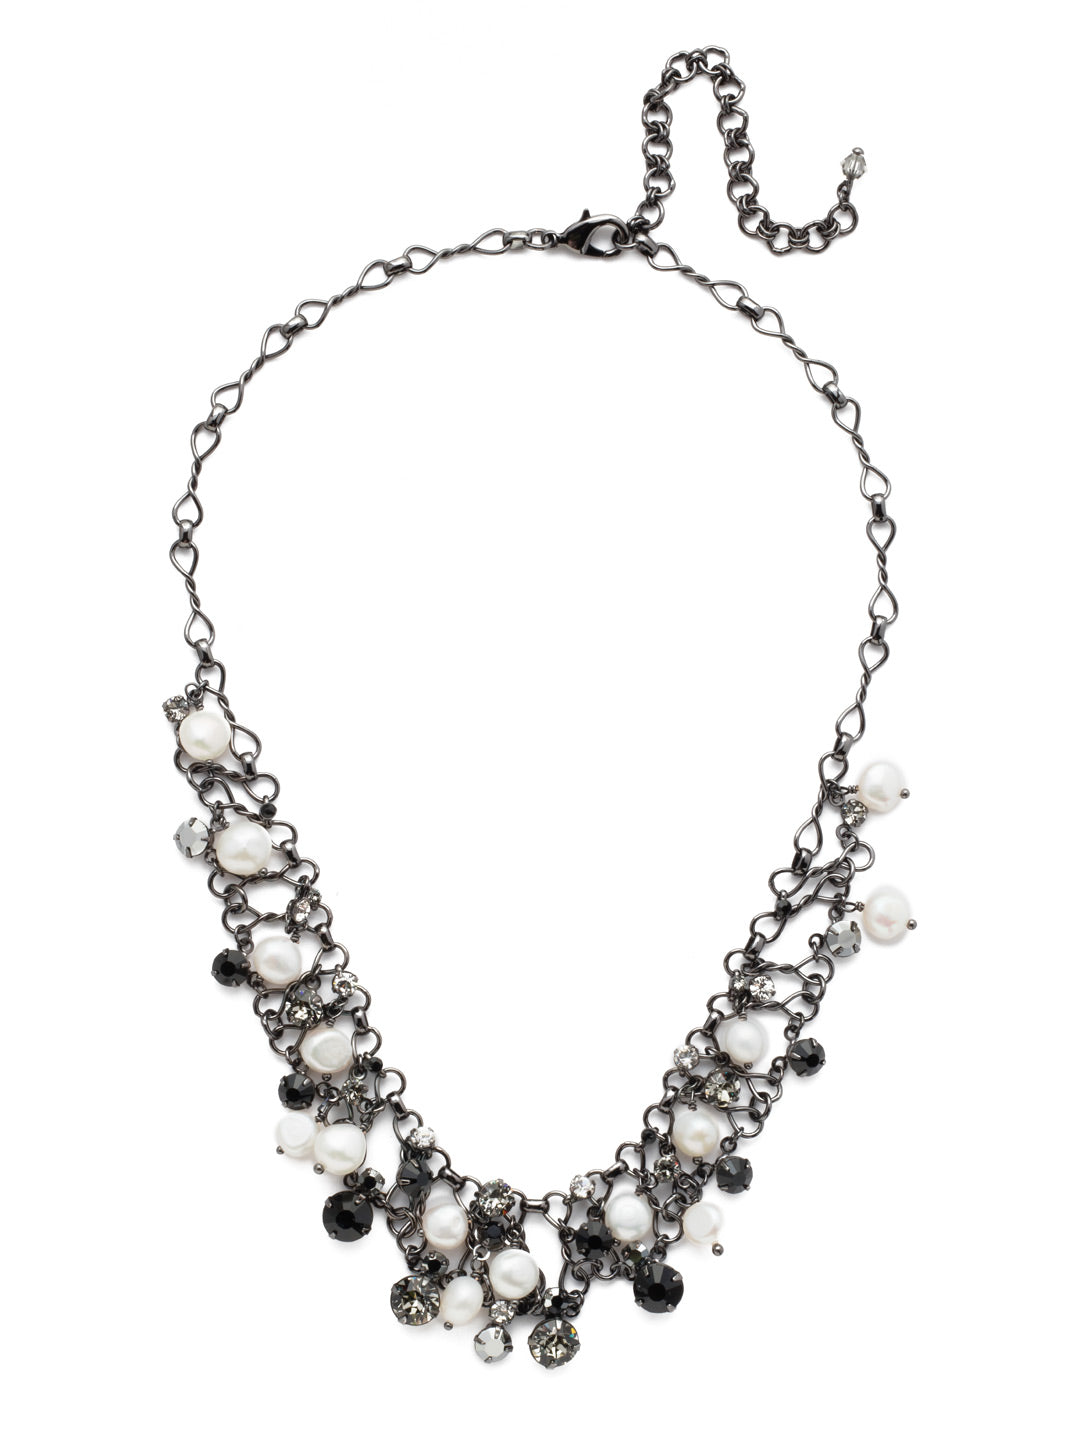 Clustered Crystal and Bead Tennis Necklace - NCF5GMMMO